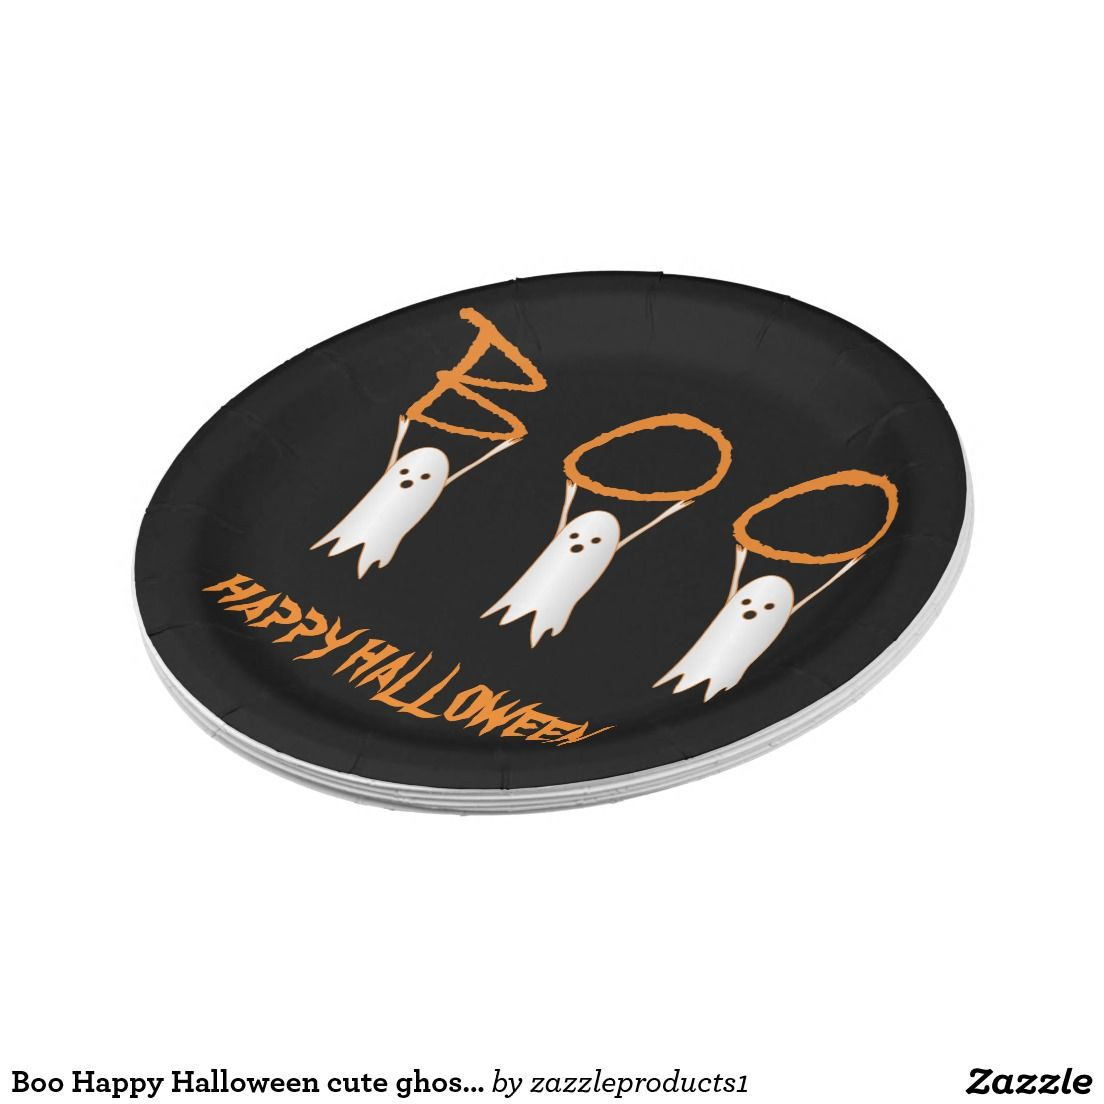 Boo Happy Halloween cute ghosts modern Paper Plate  sc 1 st  Pinterest & Boo Happy Halloween cute ghosts modern Paper Plate | Happy halloween ...